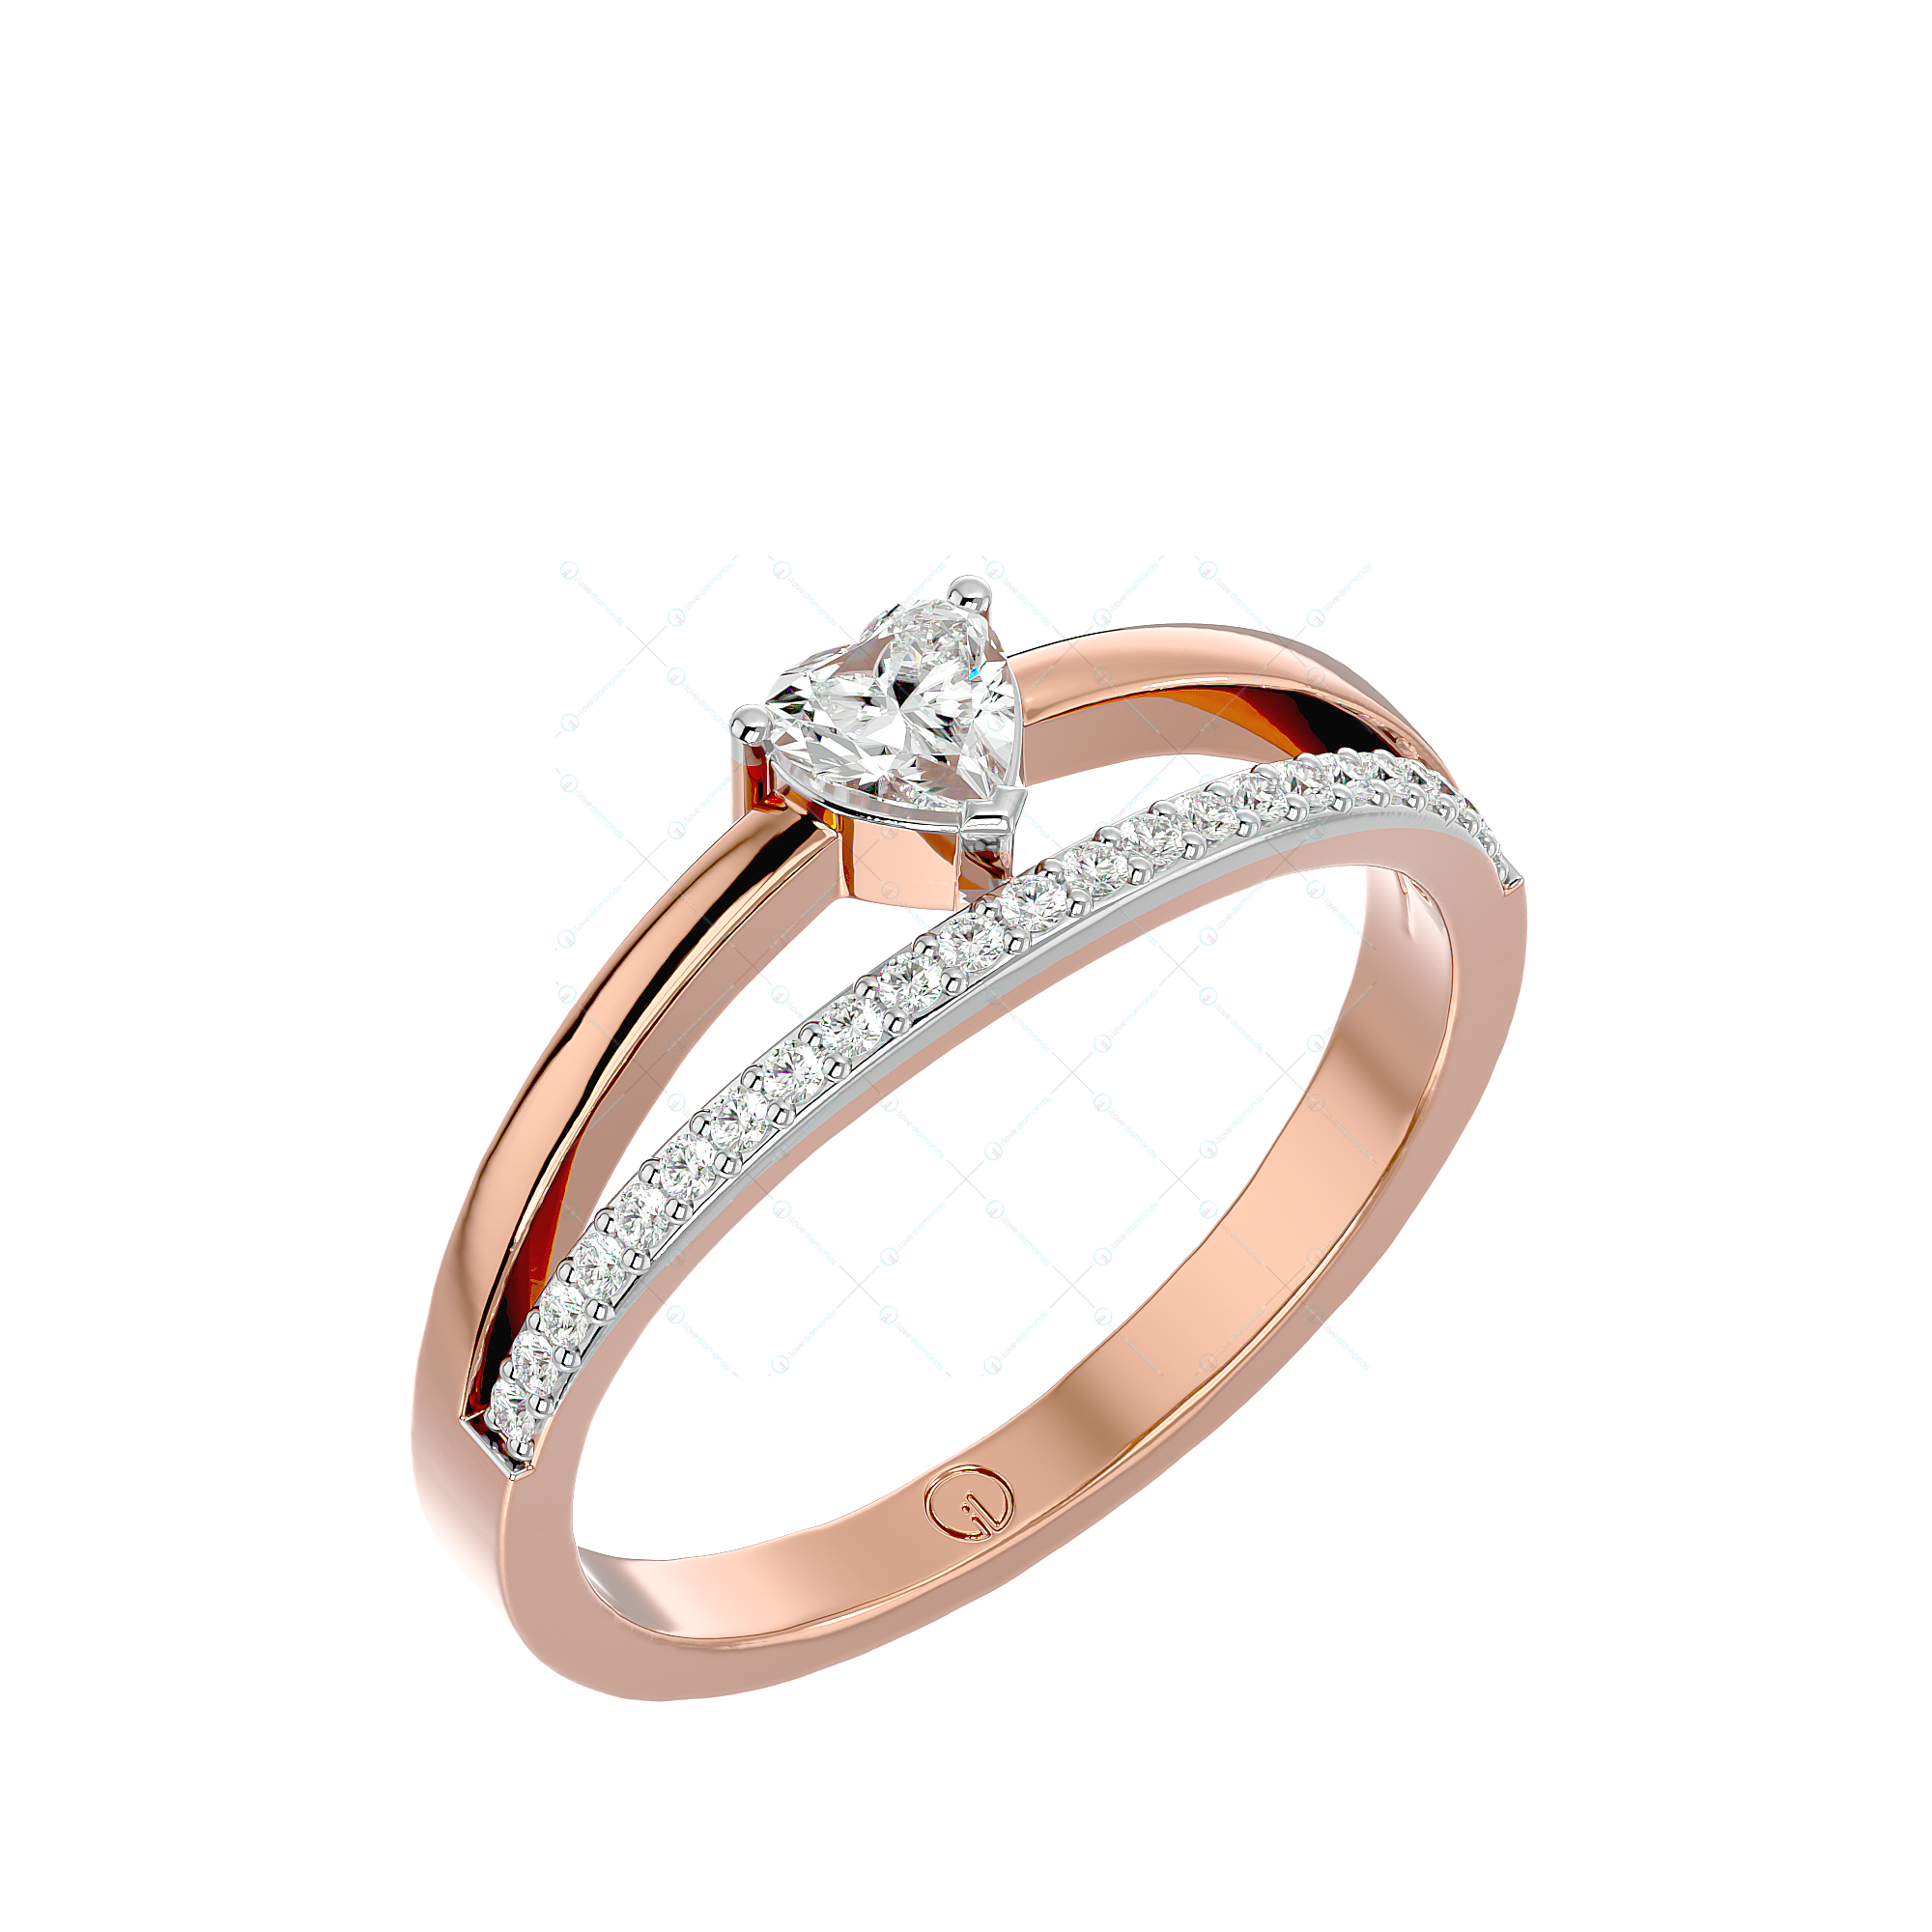 Dreamy Fascinations Solitaire Engagement Ring In Pink Gold For Women v1